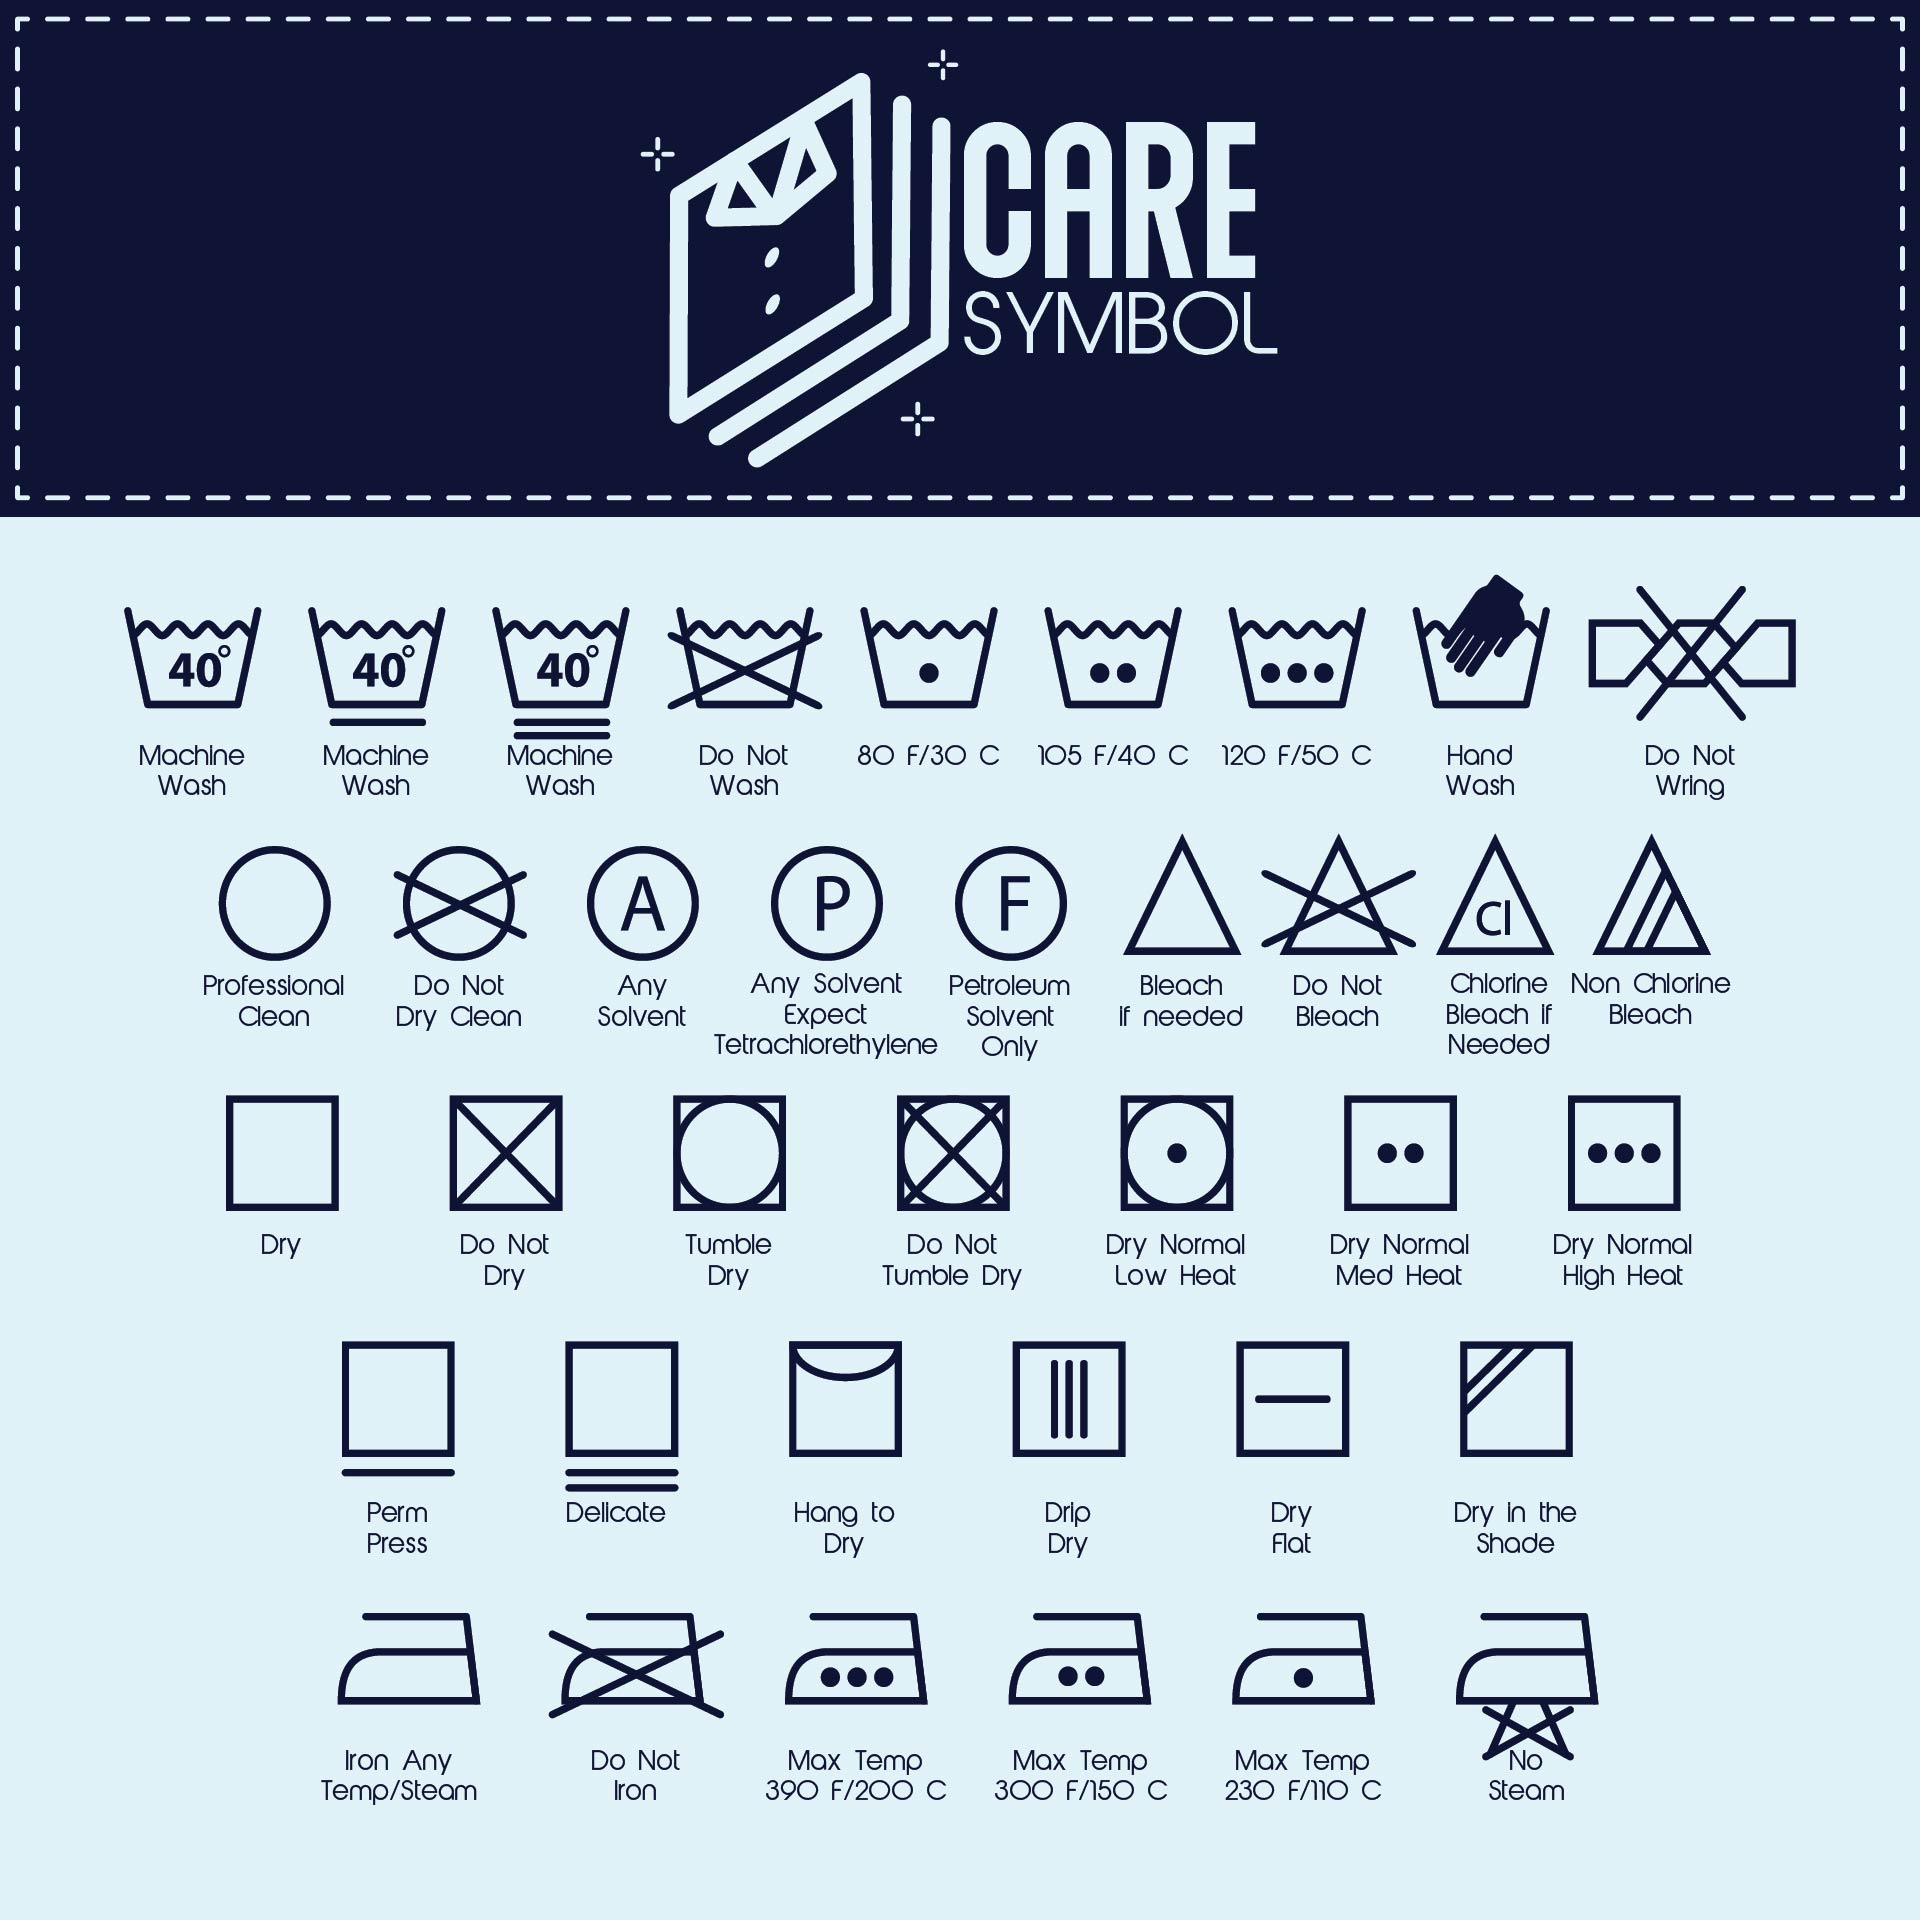 7 Images of Printable Laundry Care Symbol Chart